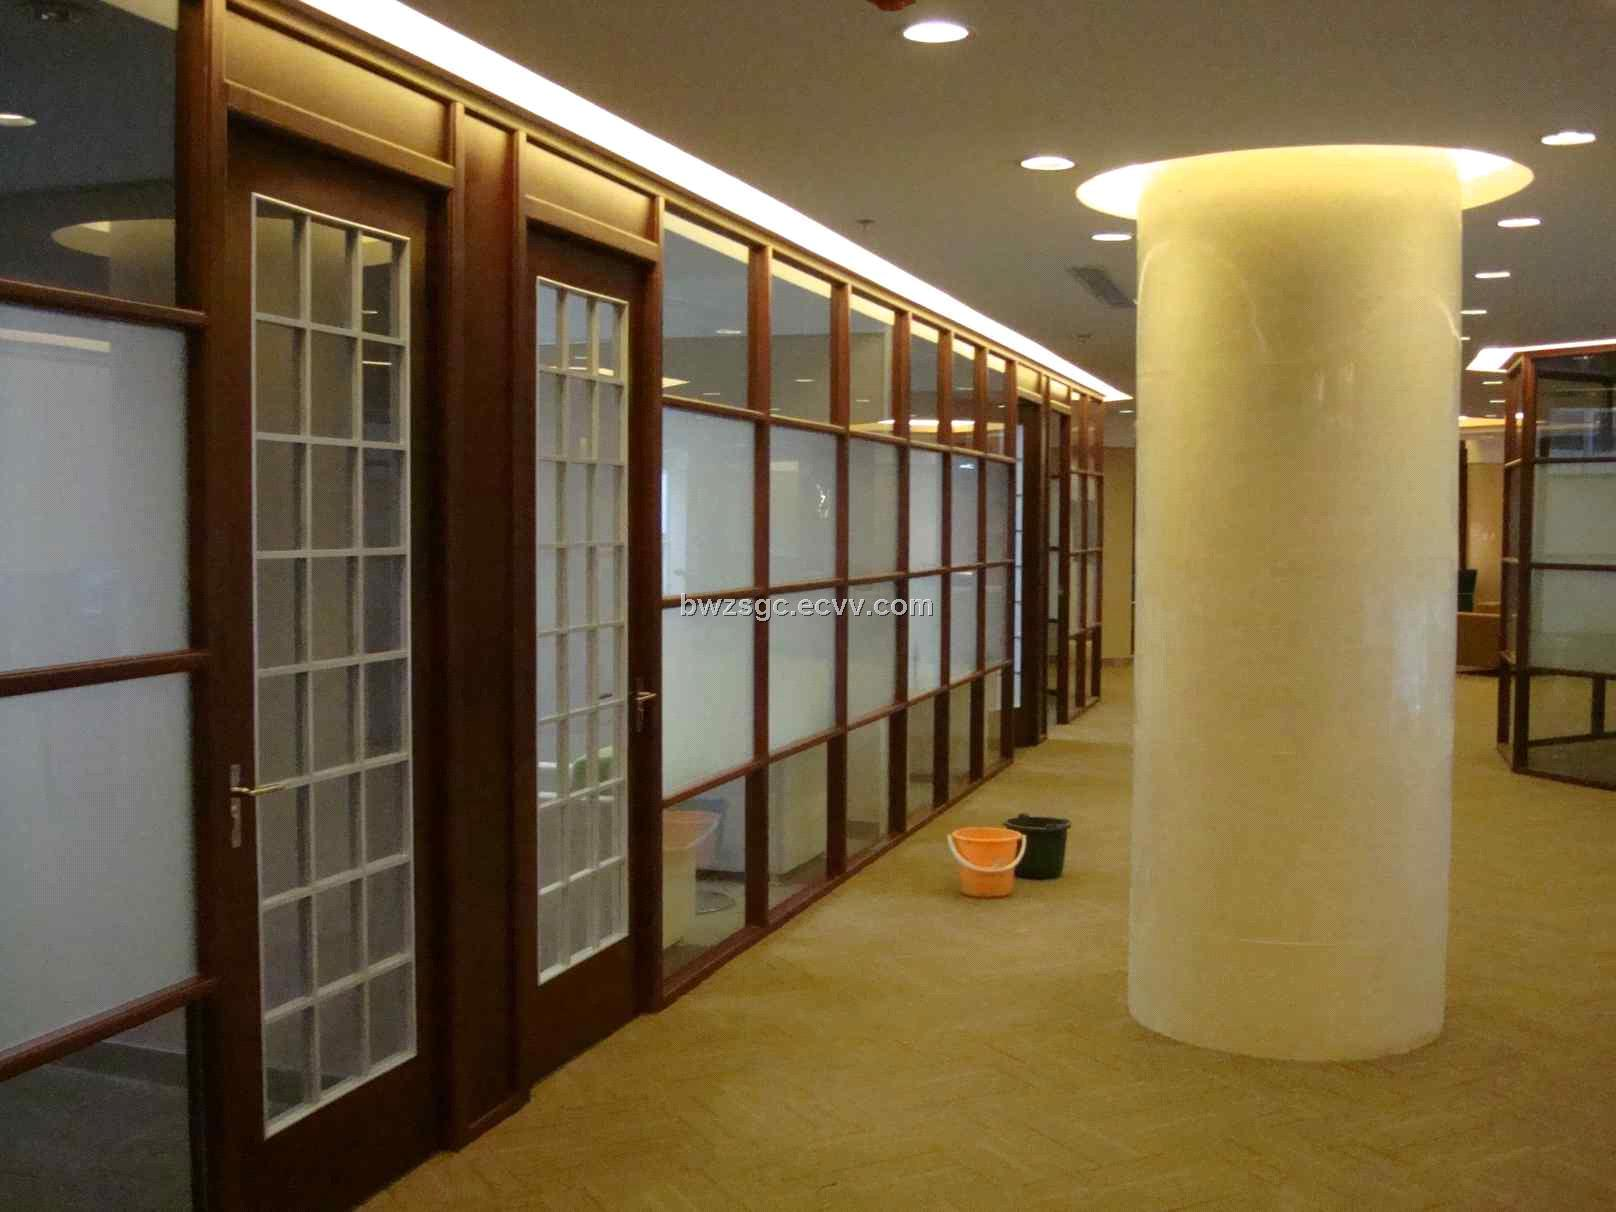 Wood Partition Walls a sleeper wood partition in the outdoor section barricades it from